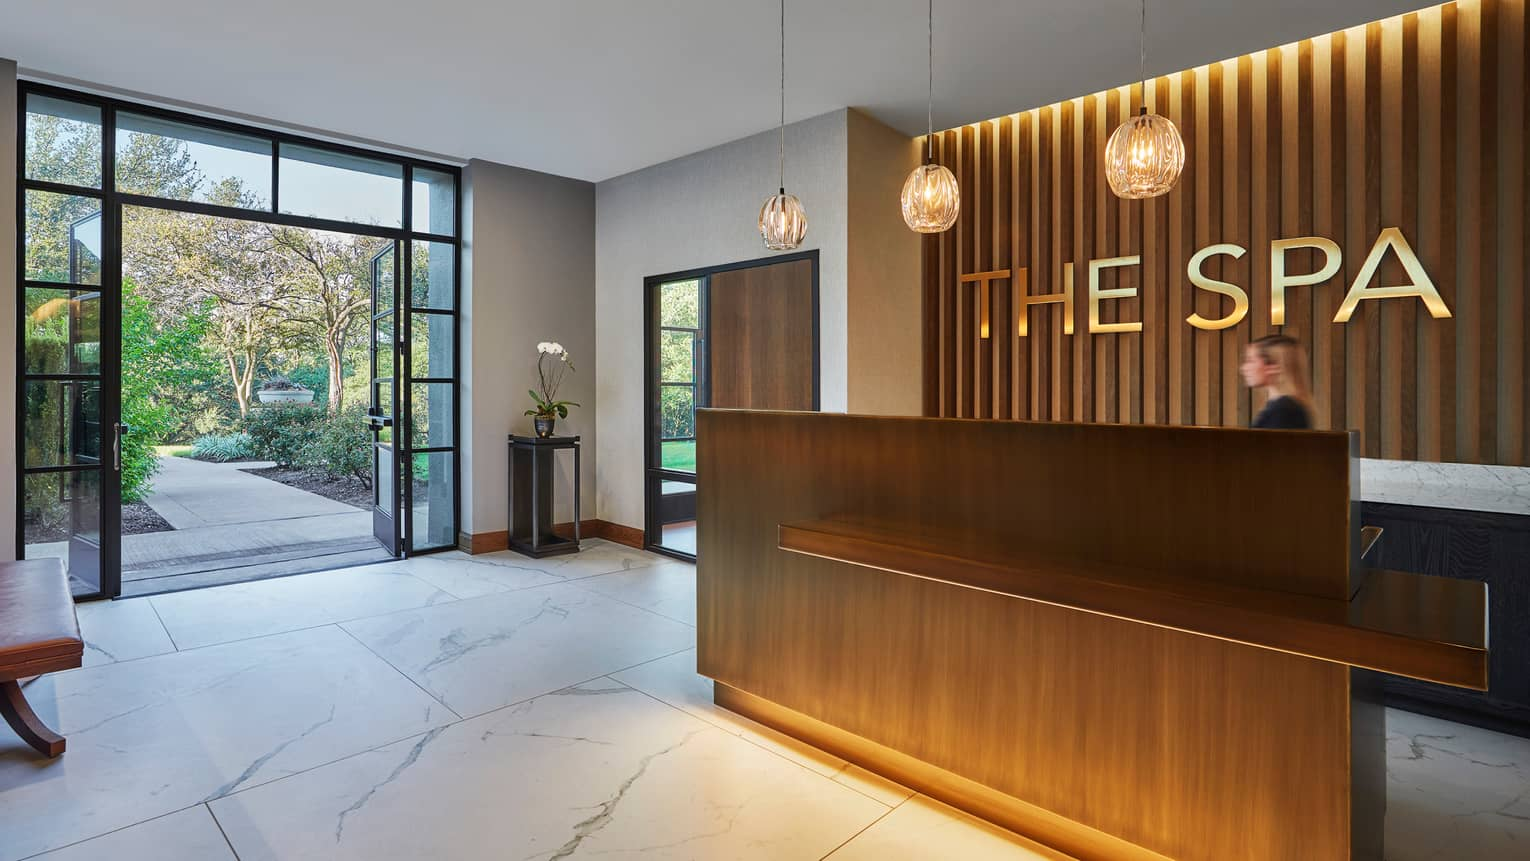 The Spa modern wood reception desk with gold sign, white marble floors, glass door